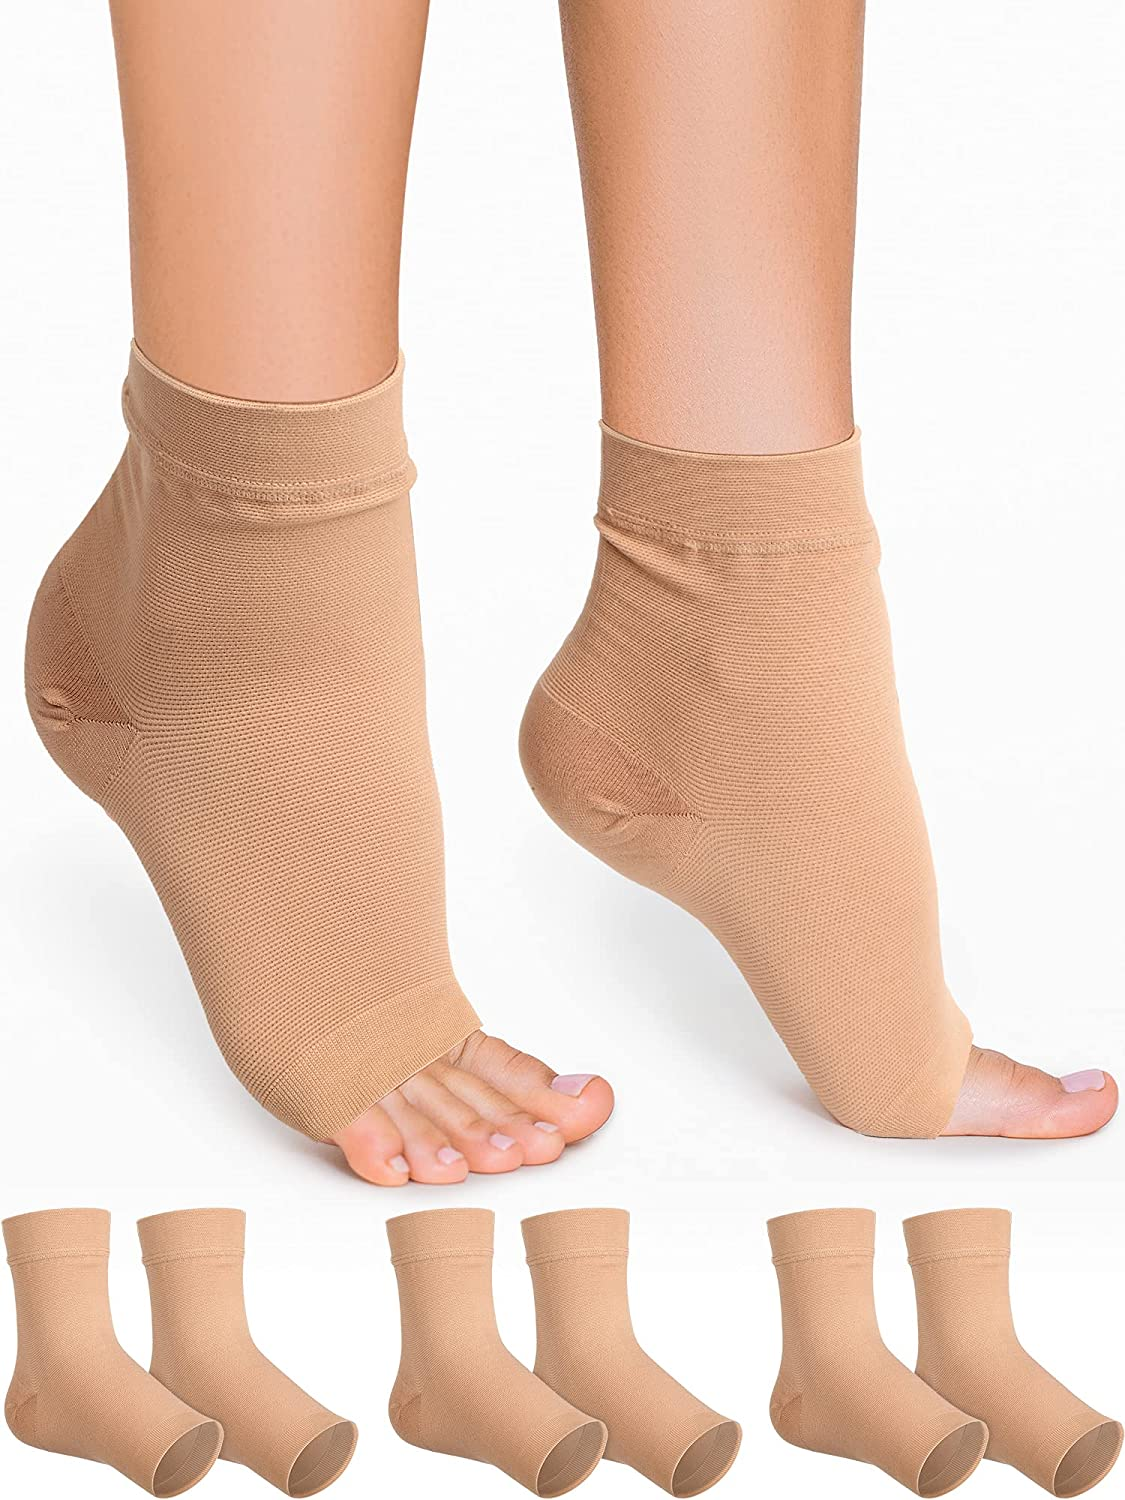 3 Pairs Latest item Ankle Compression Max 43% OFF Sleeve Socks Women for Men mmHg 23-35